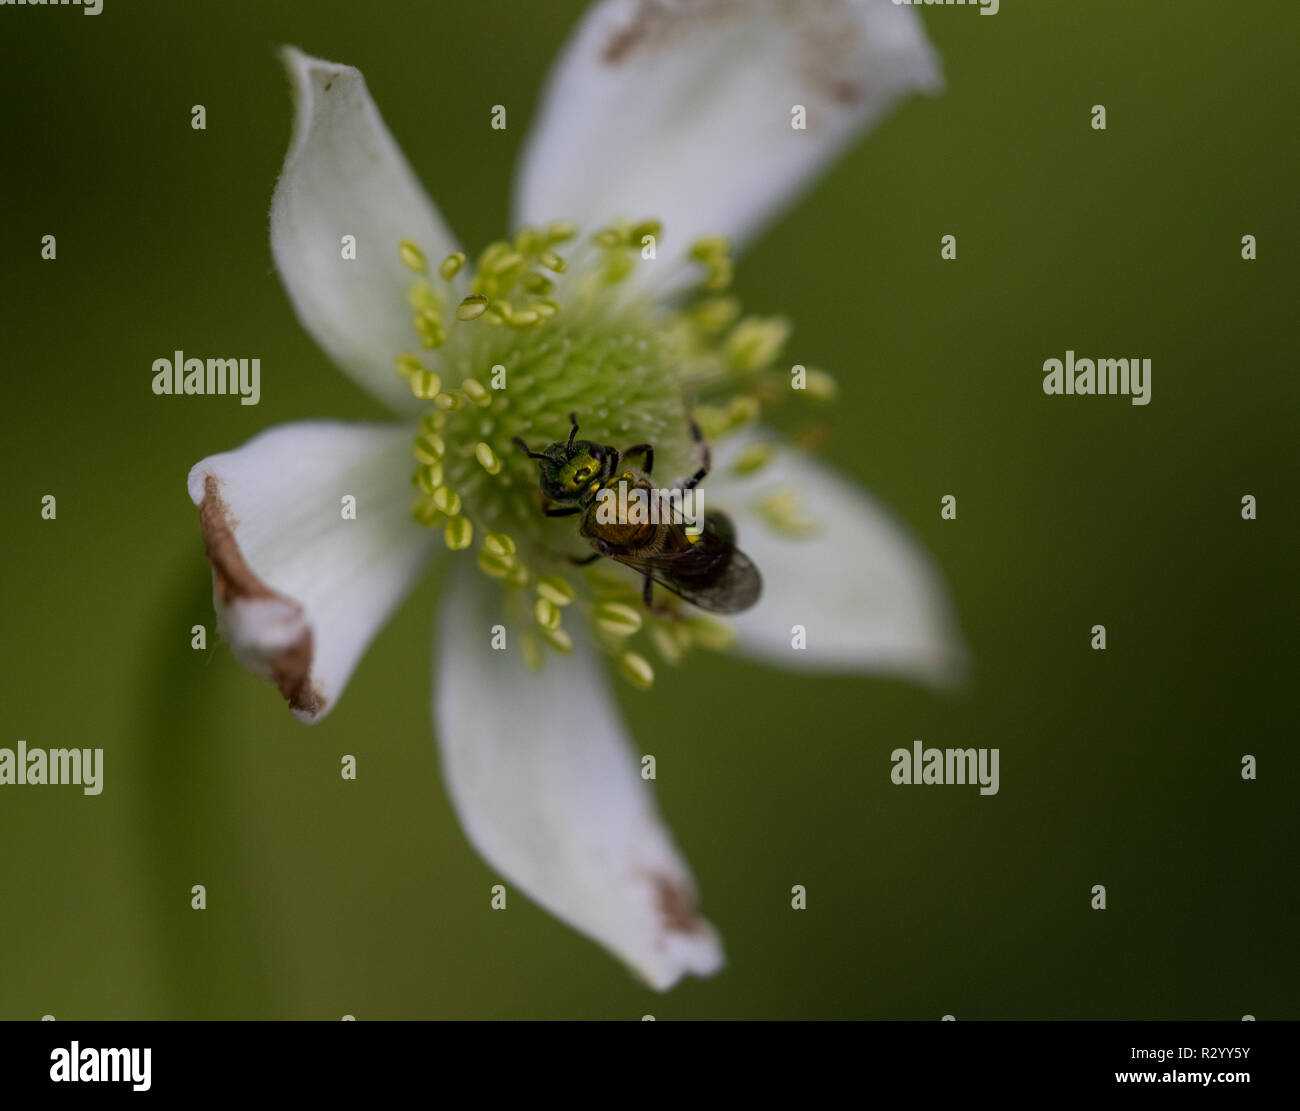 Green metallic sweat bee gathering pollen from Cherokee rose, Great Smoky Mountains National Park, Cades Cove loop - Stock Image